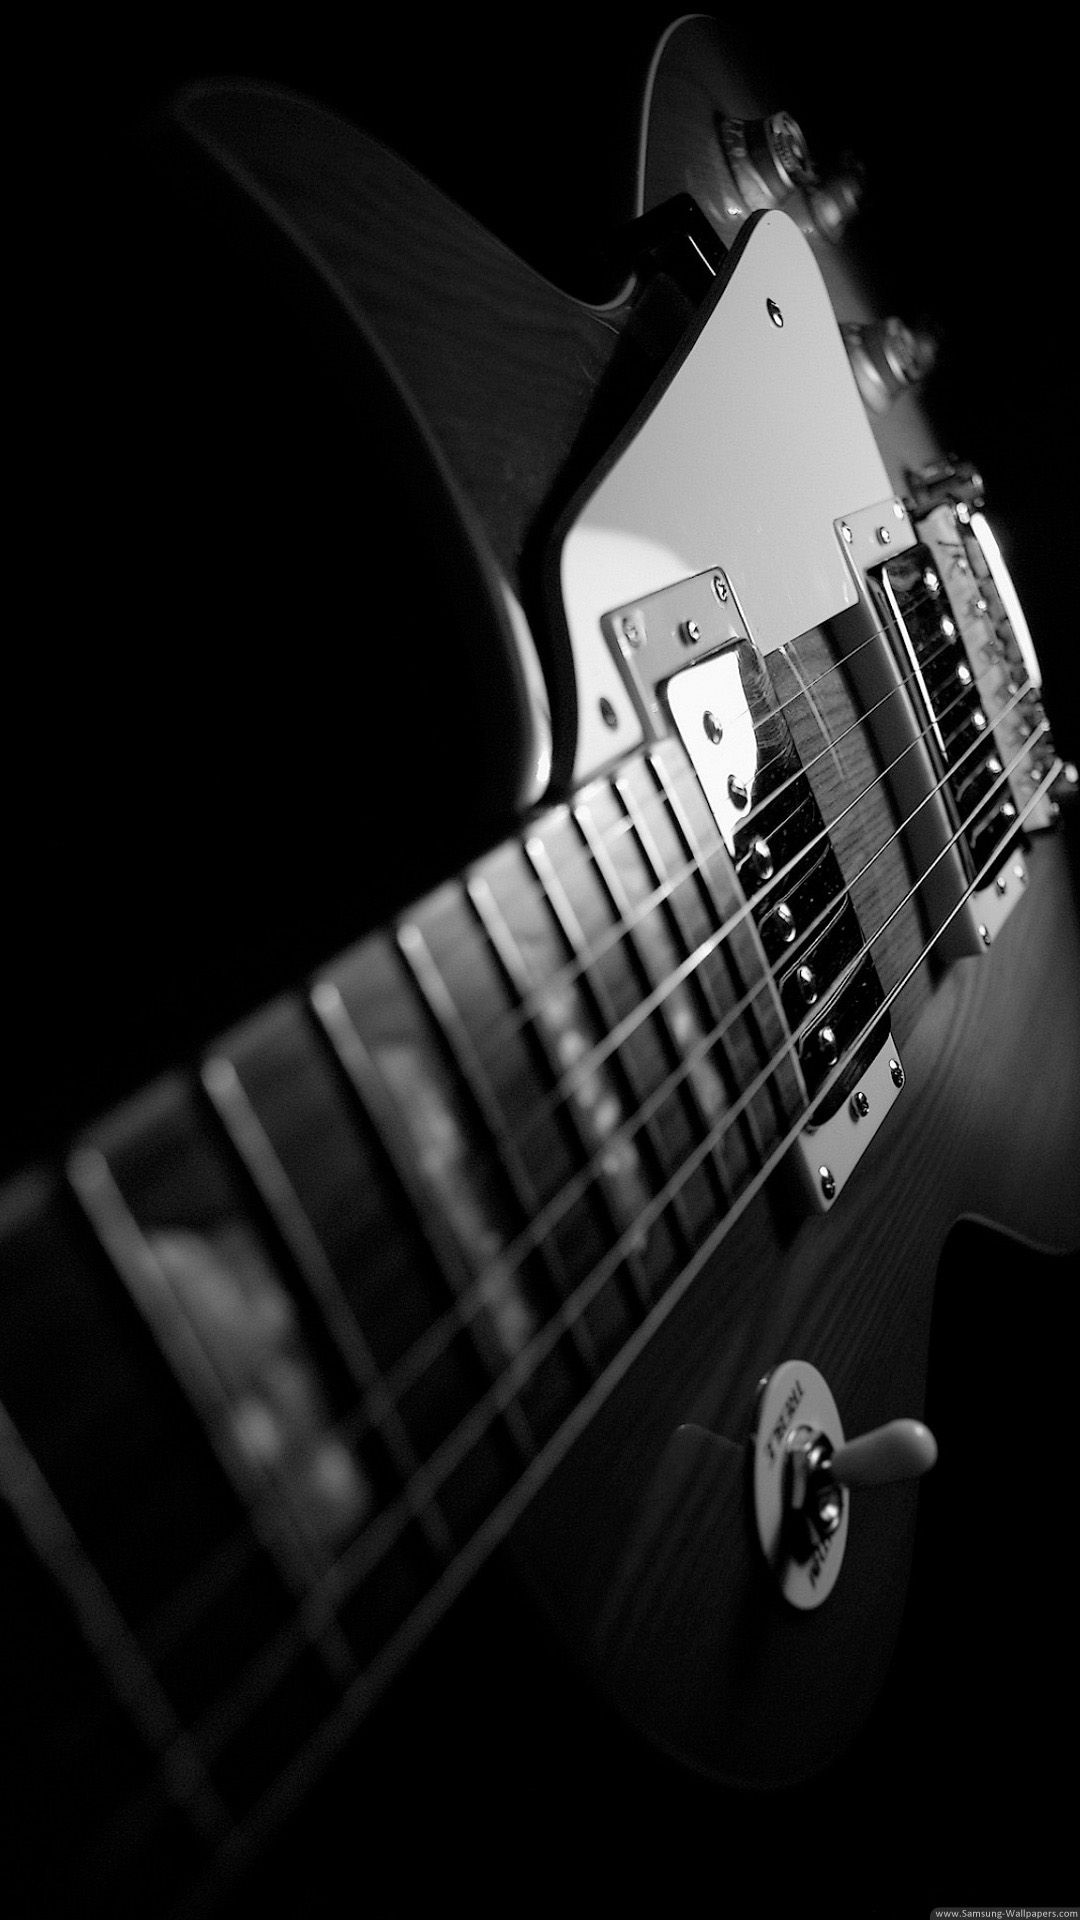 Guitars Strings Desktop 1080x1920 Hd Galaxy S4 Wallpaper Hd Samsung Wallpapers Guitar Wallpaper Iphone Guitar Photos Samsung Wallpaper